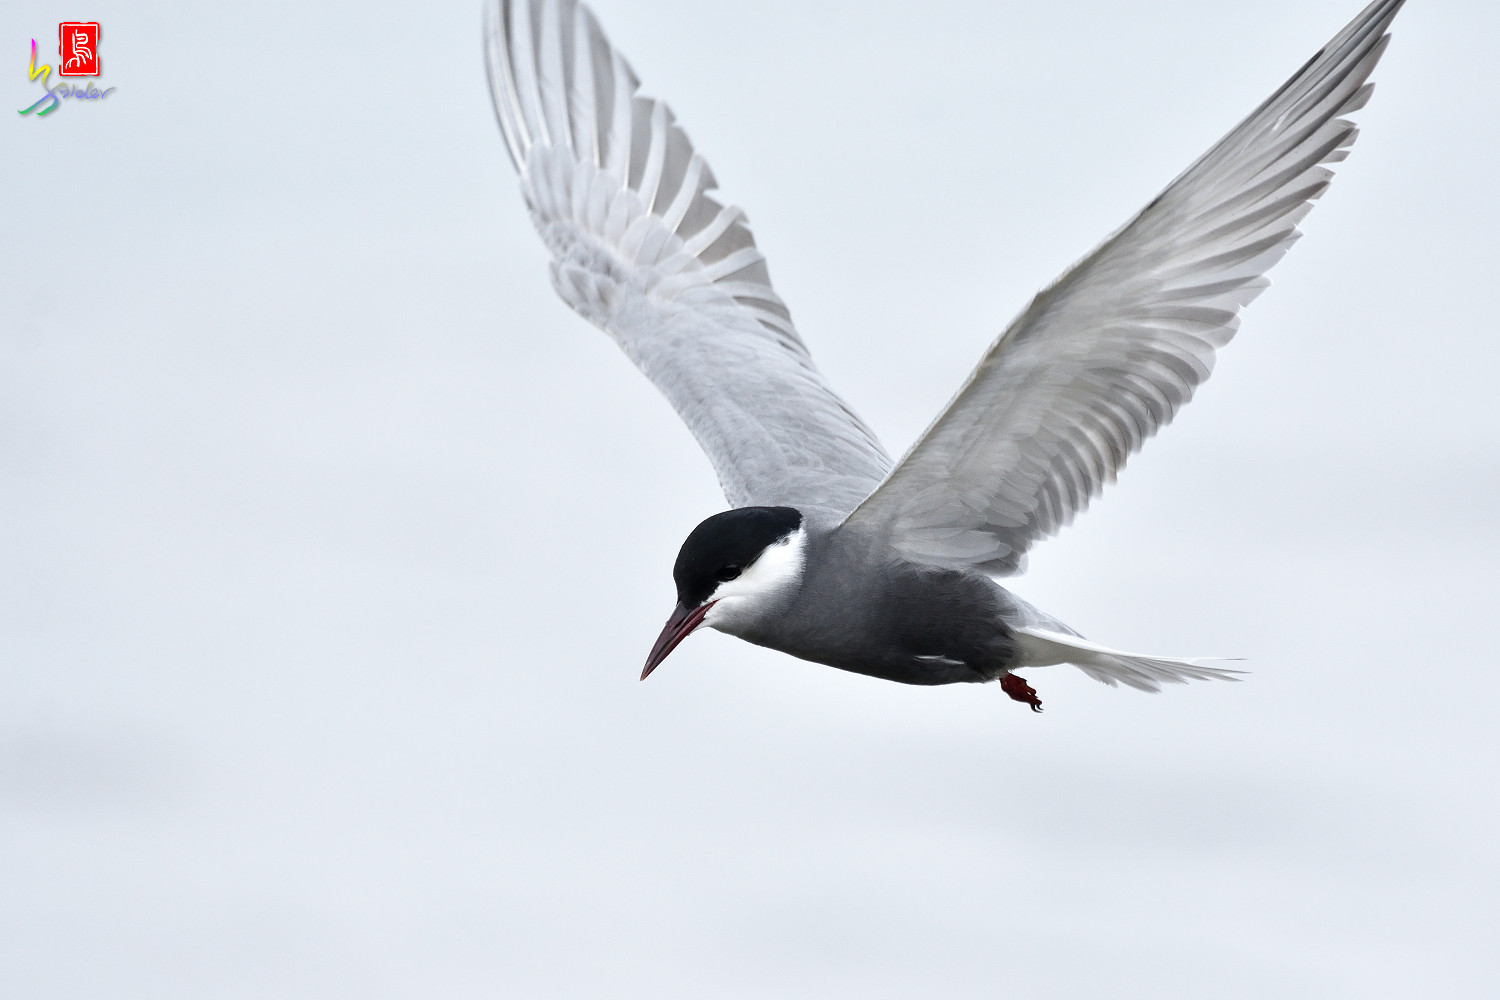 Whiskered_Tern_6110